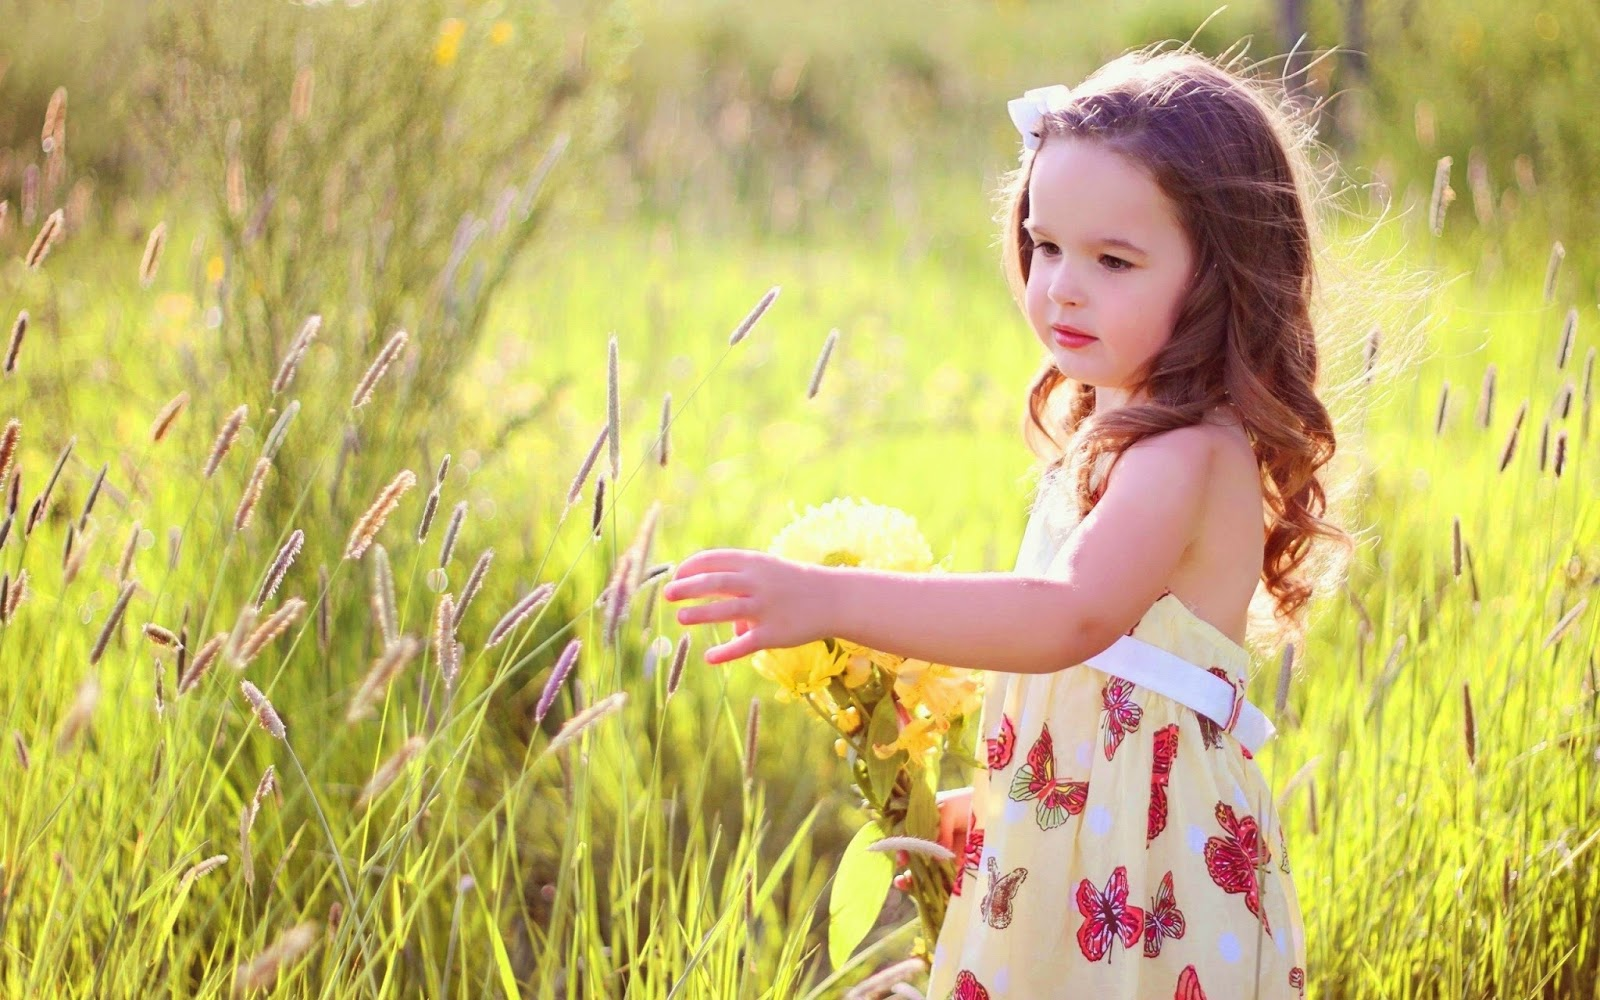 Free Download 10 Cute Girl Hd Wallpapers  Free Download -9657